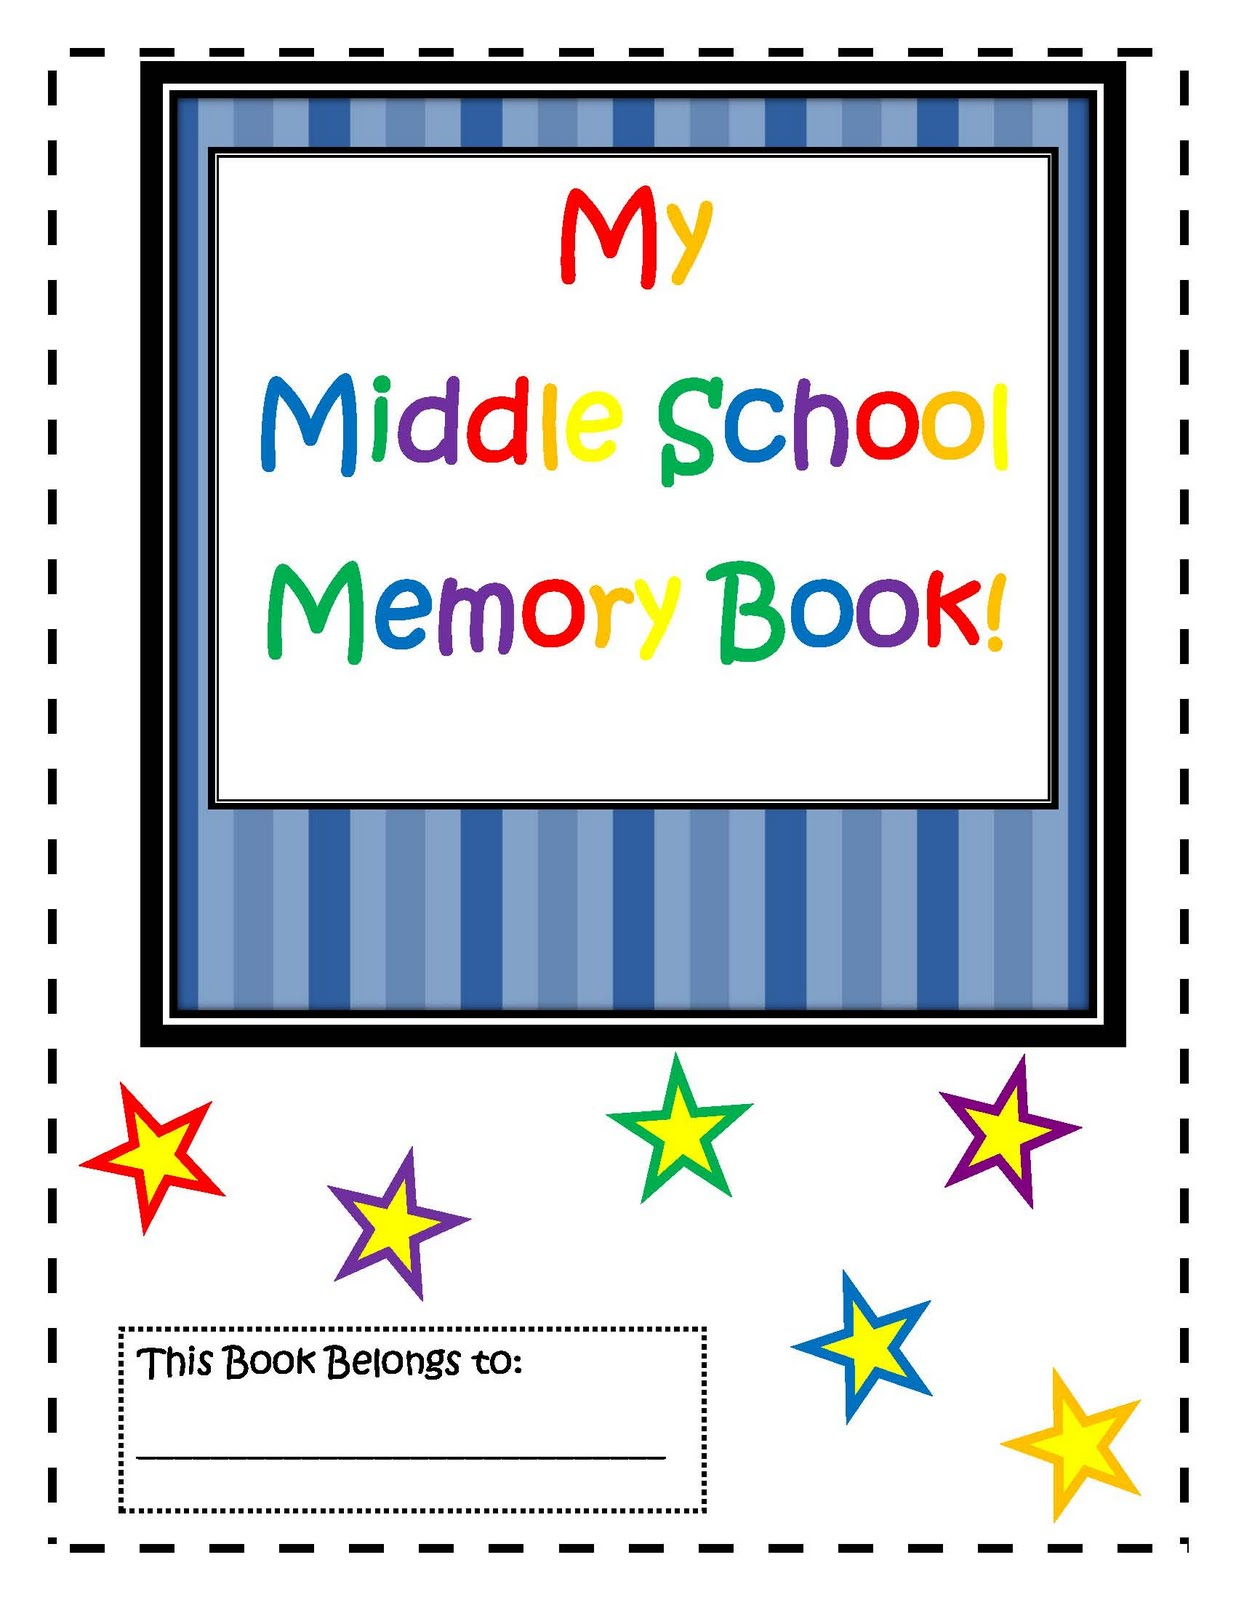 Engaging Lessons And Activities Middle School Memory Book